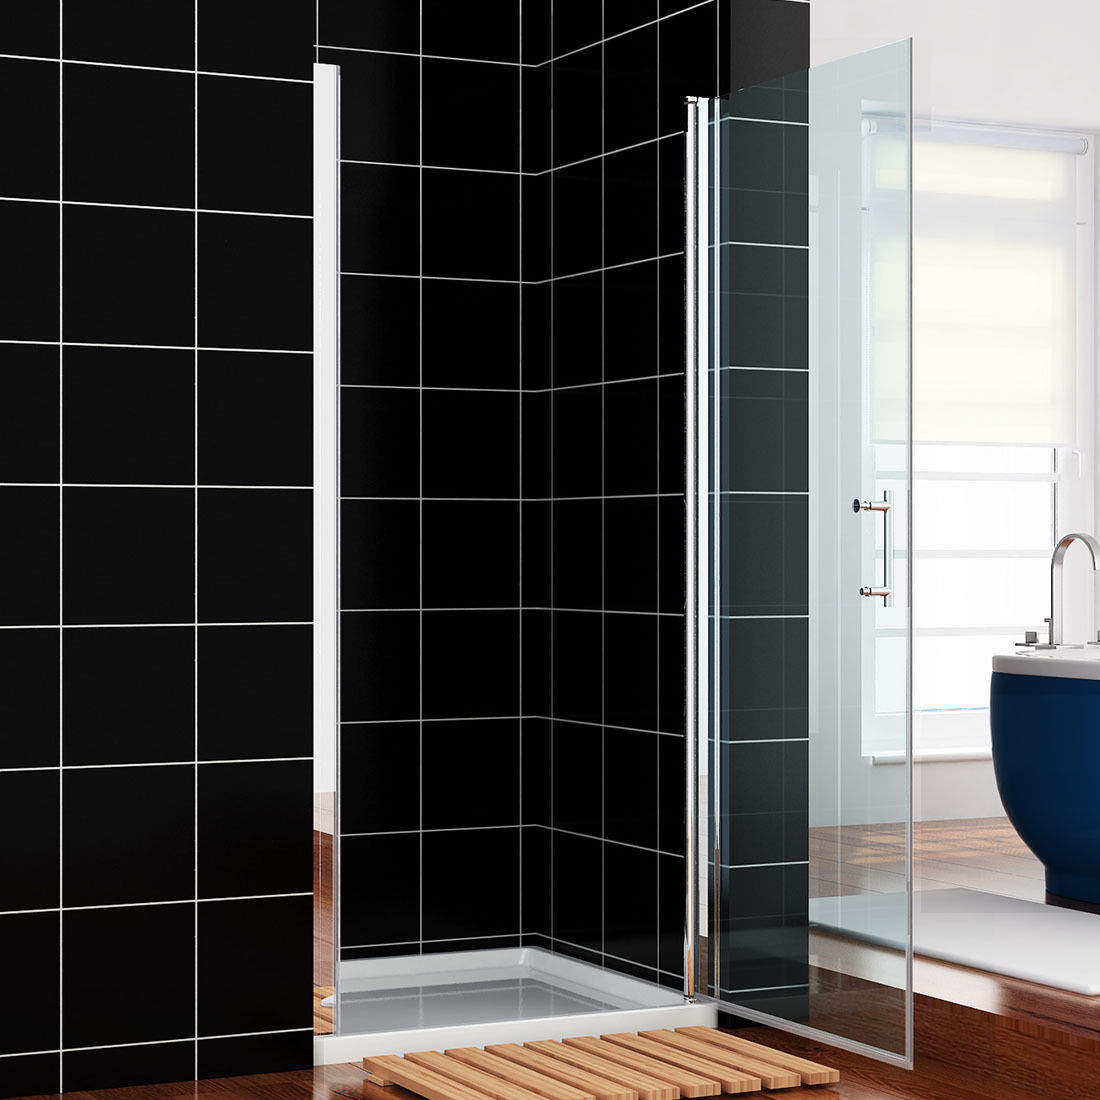 Details About Sunny Shower One Panel Semi Frameless Pivot Shower Door 30 In Clear Glass Chrome